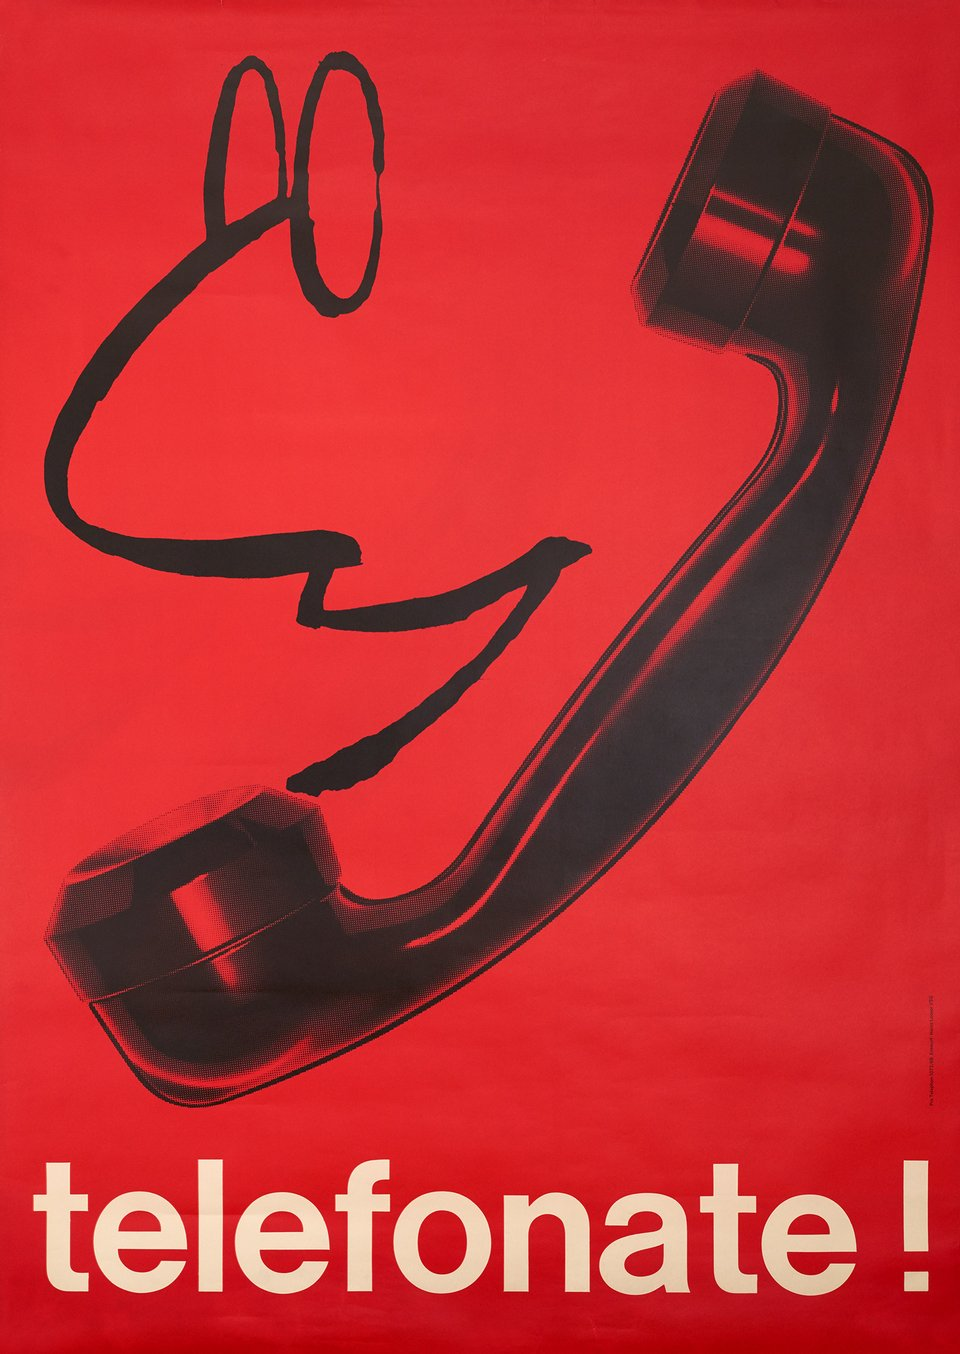 Telefonate! – Affiche ancienne – Hans LOOSER – 1968